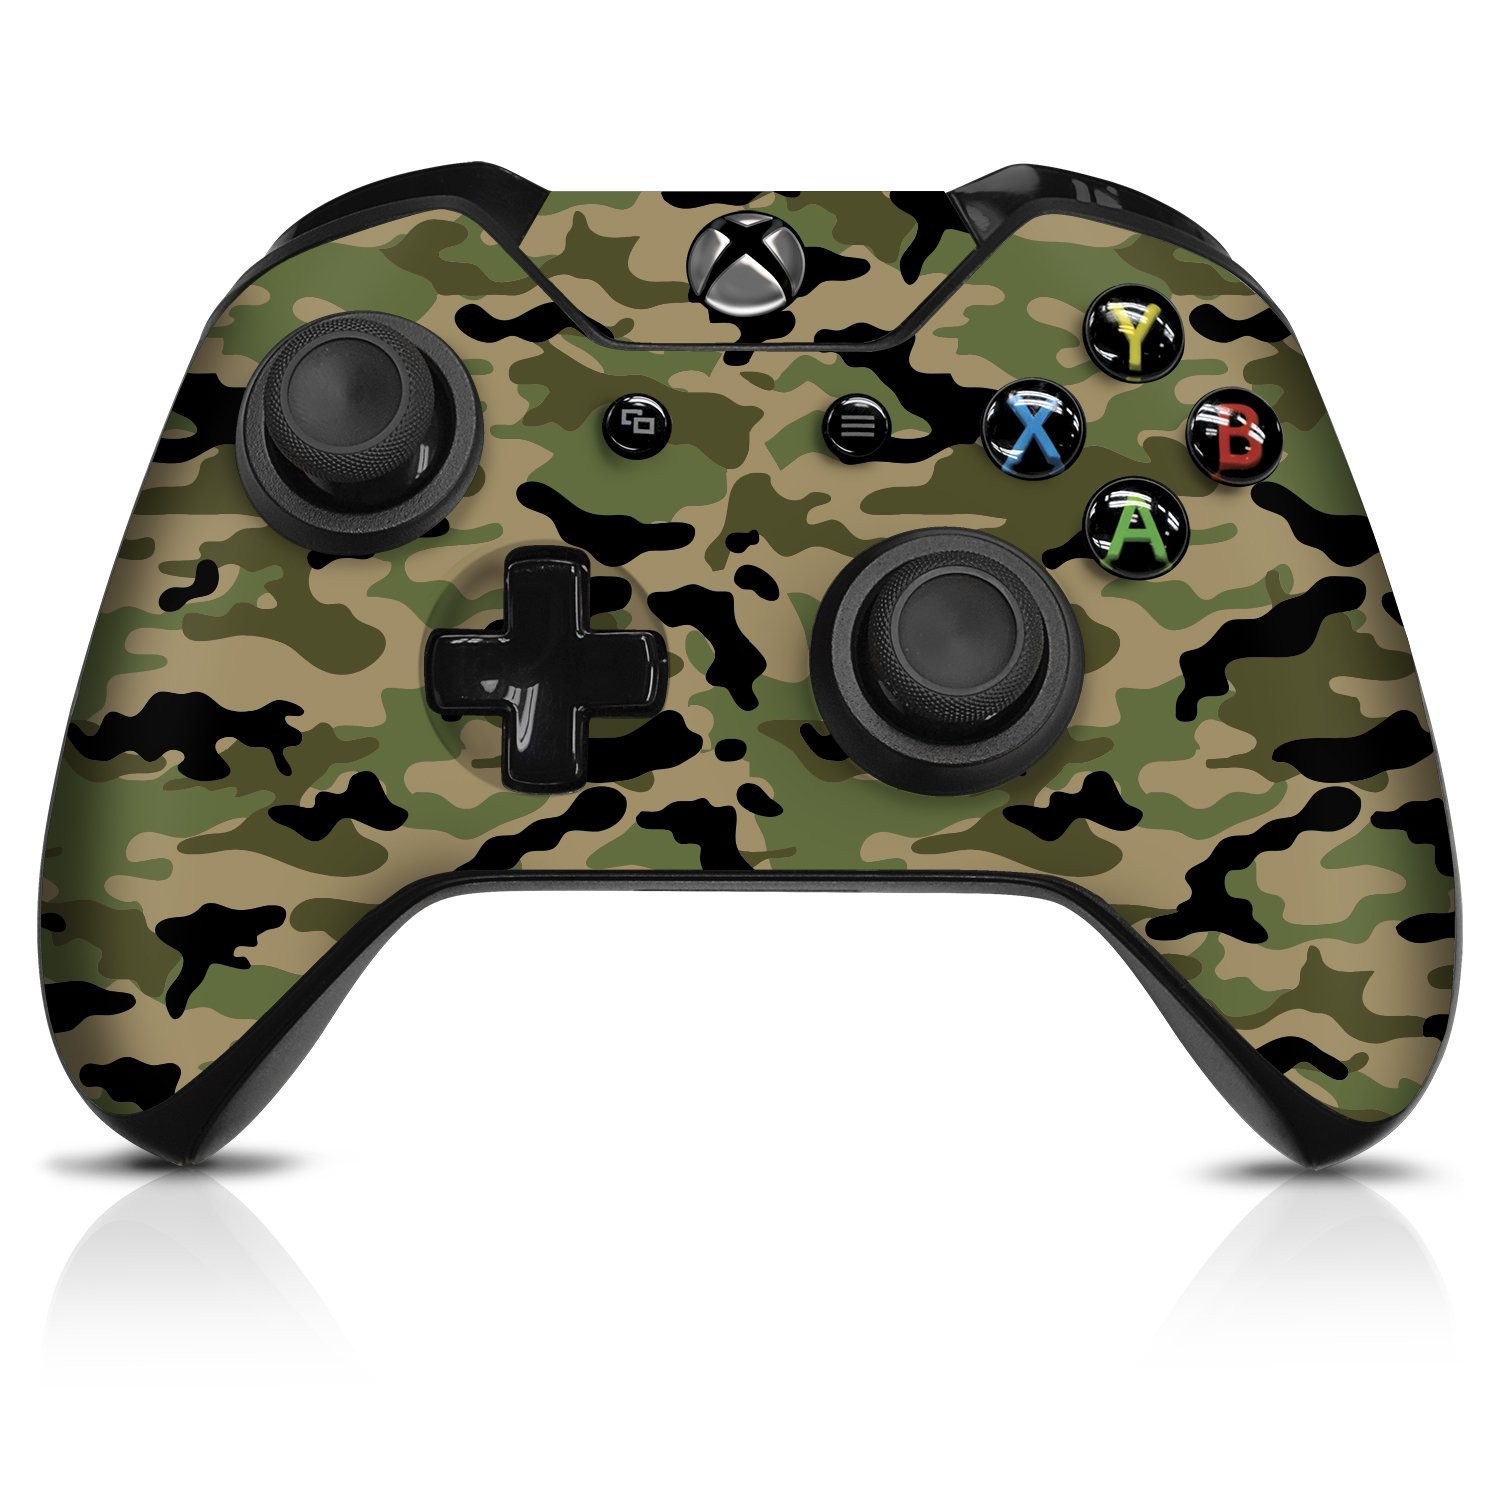 Forest Camo Xbox One Controller Skin - Officially Licensed by Xbox -  Controller Gear